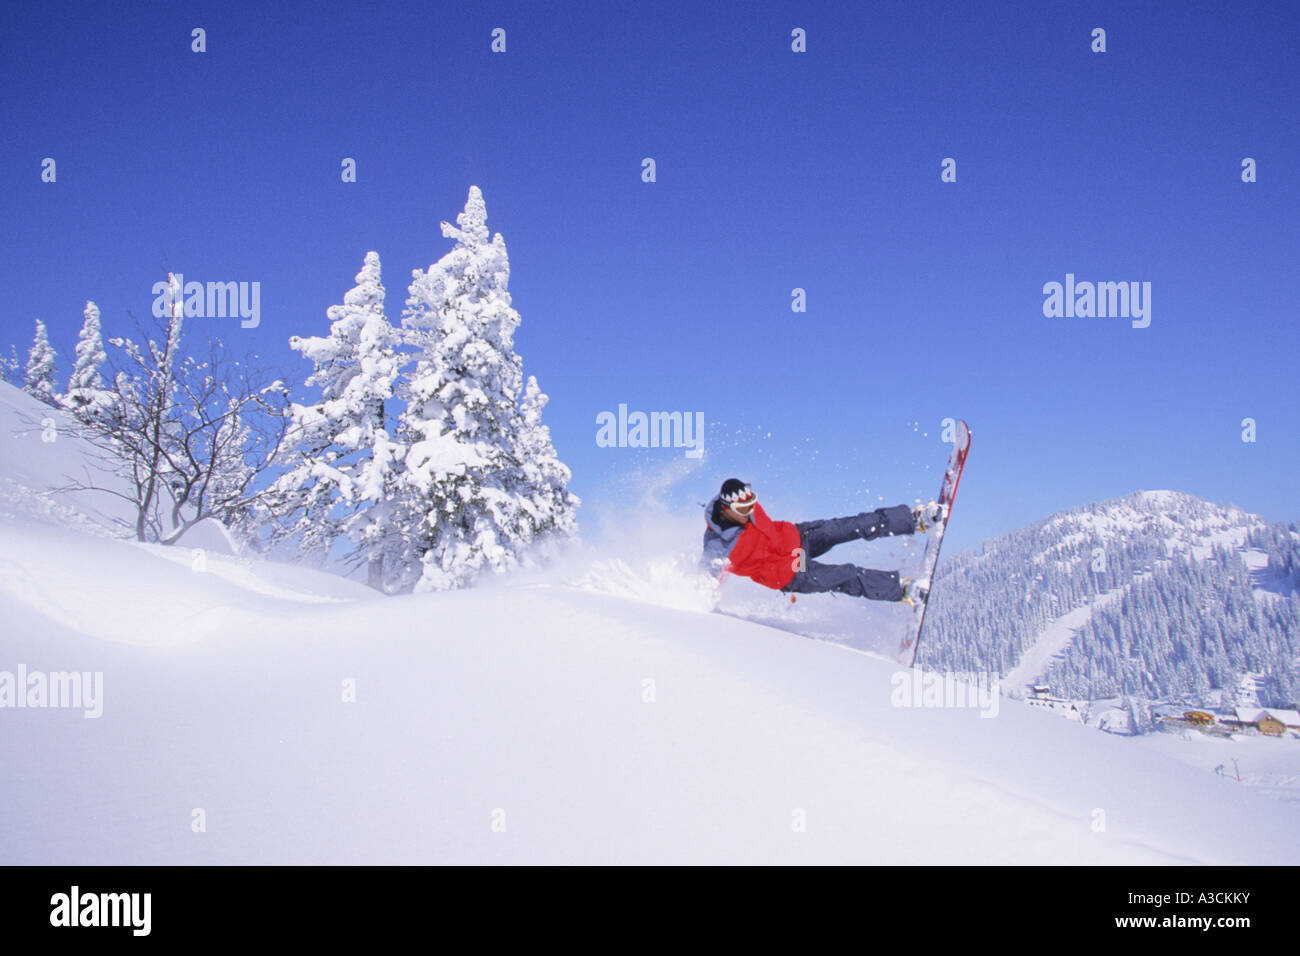 snowboarder jumping downhill, Austria, Alps - Stock Image